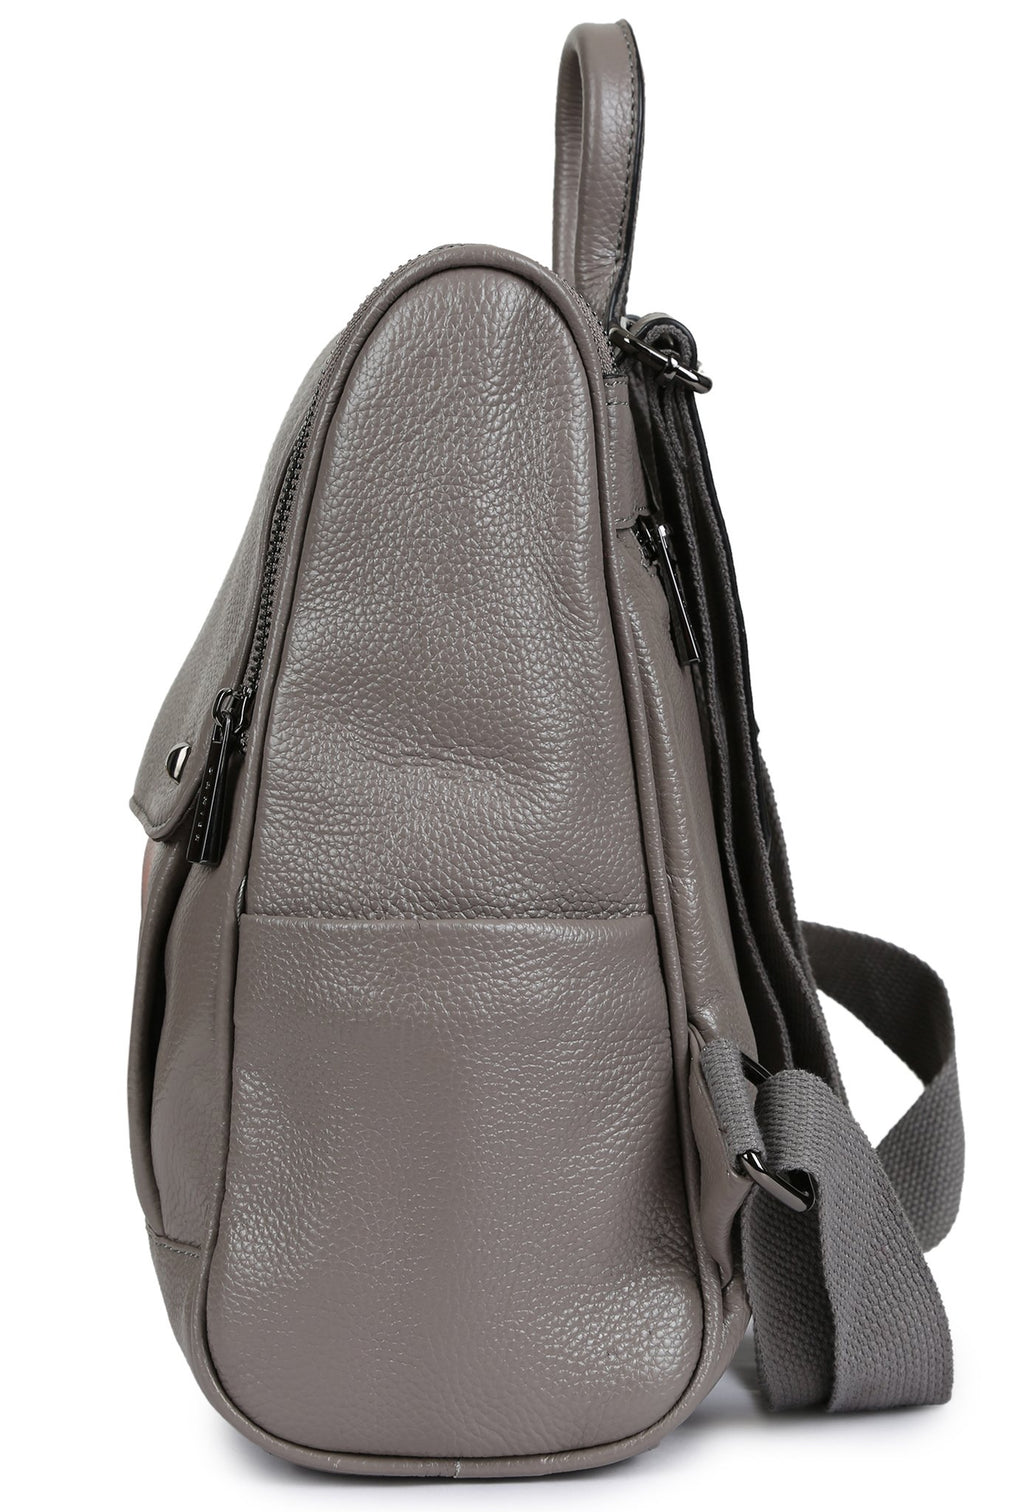 VIKAS - Pebbled Leather Backpack - Grey